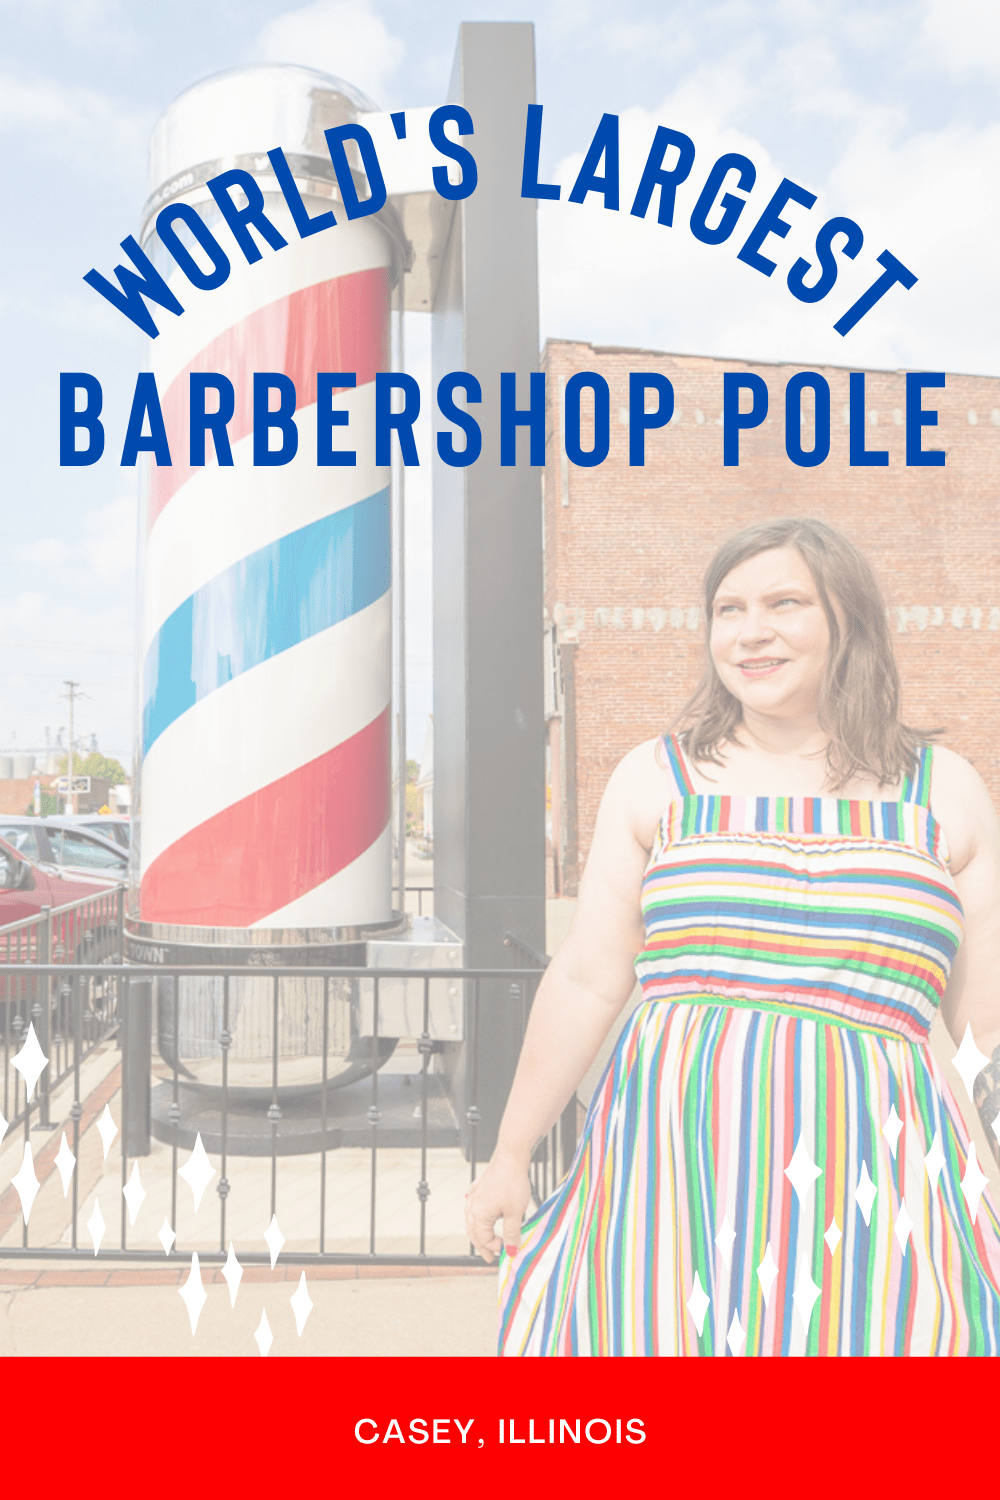 This Illinois roadside attraction might just be a cut above the rest — it's the world's largest barbershop pole in Casey, Illinois. At 14 feet tall and 3 feet 11 inches wide, this Illinois roadside attraction is a hair above ten times the size of the standard.  #IllinoisRoadsideAttractions #IllinoisRoadsideAttraction #RoadsideAttractions #RoadsideAttraction #RoadTrip #IllinoisRoadTrip #IllinoisWeekendGetaways #IllinoisWithKids #IllinoisRoadTripTravel